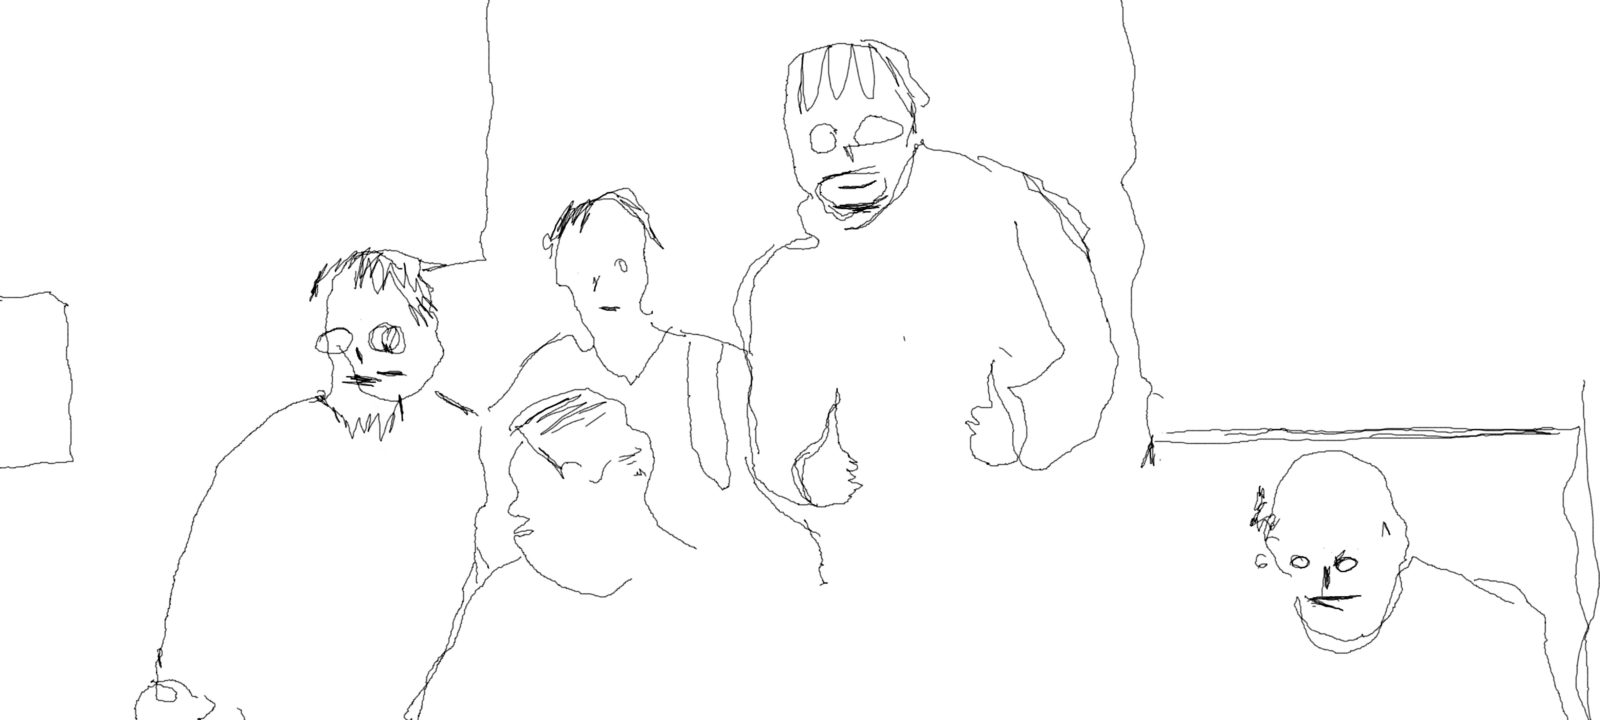 13707    3057    Graphic drawing